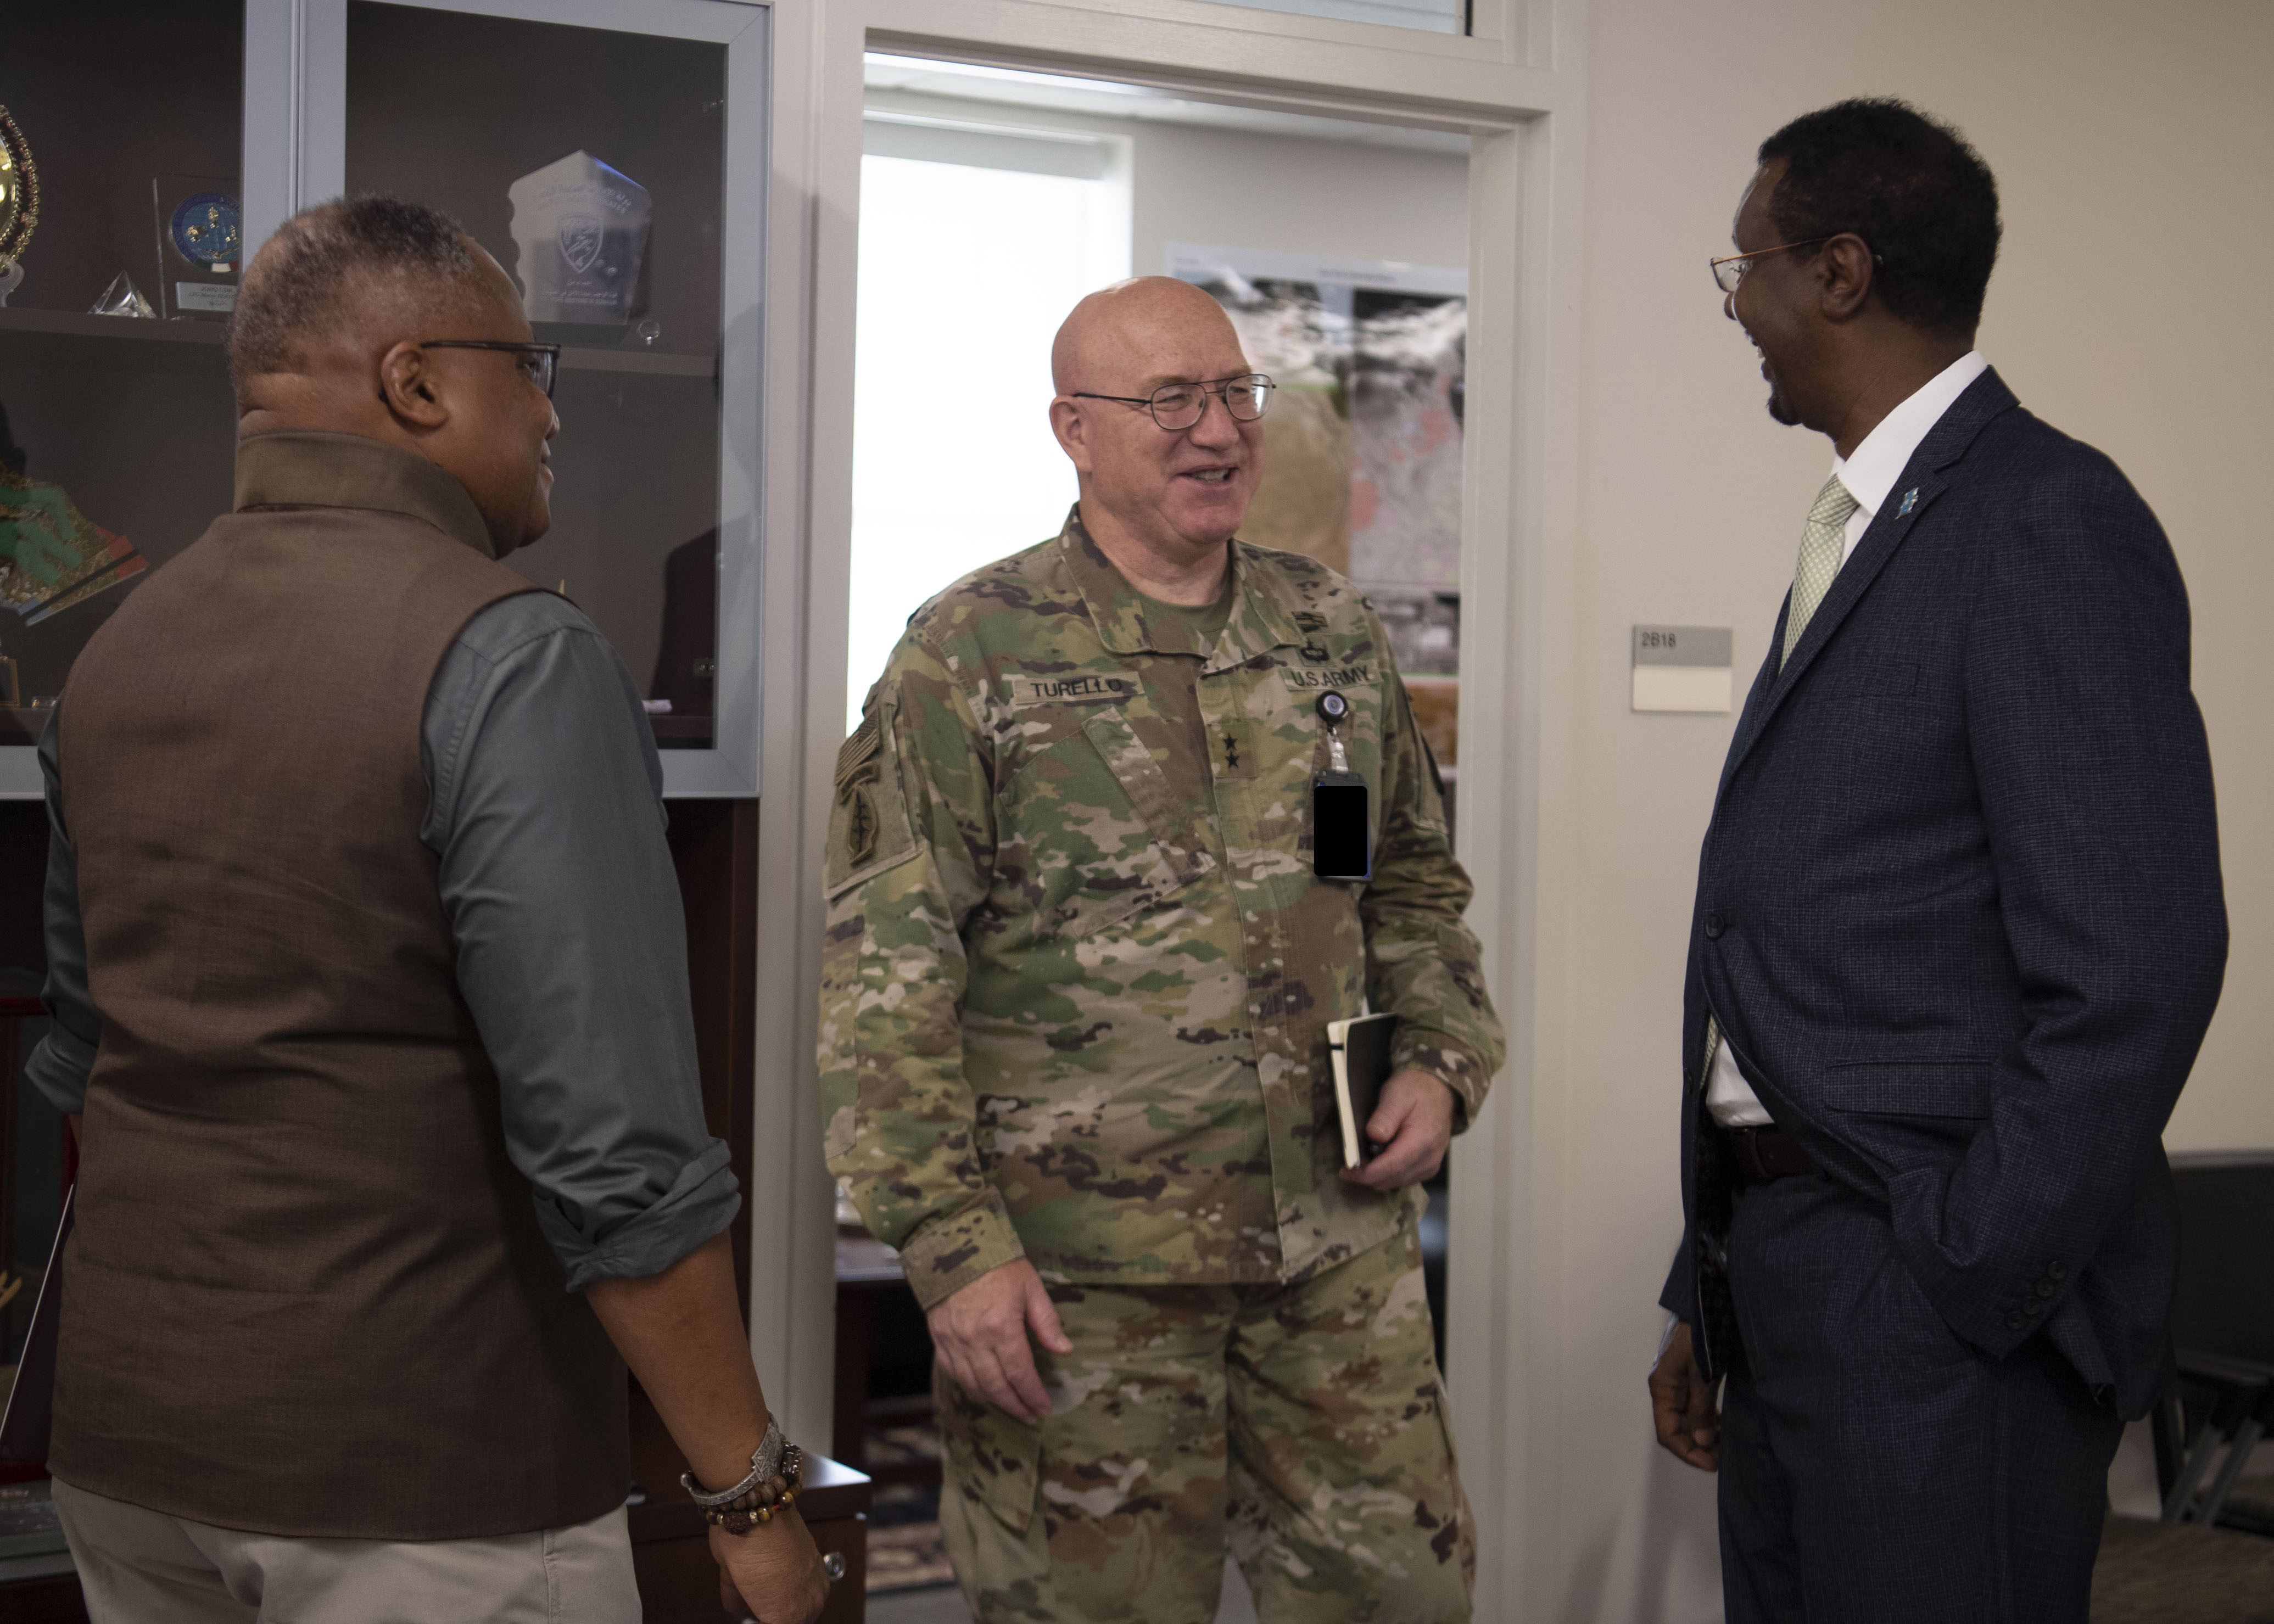 Irvin Hicks Jr., Combined Joint Task Force-Horn of Africa (CJTF-HOA) foreign policy advisor (POLAD), left, and U.S. Army Maj. Gen. Michael D. Turello, commanding general, CJTF-HOA, center, greet Dr. Mohamed Ali-Nur Hagi, Somalia ambassador to Djibouti, at Camp Lemonnier, Djibouti, July 8, 2019. Hagi visited Camp Lemonnier to learn about the CJTF-HOA mission and its contributions to East Africa. (U.S. Air Force photo by Staff Sgt. J.D. Strong II)